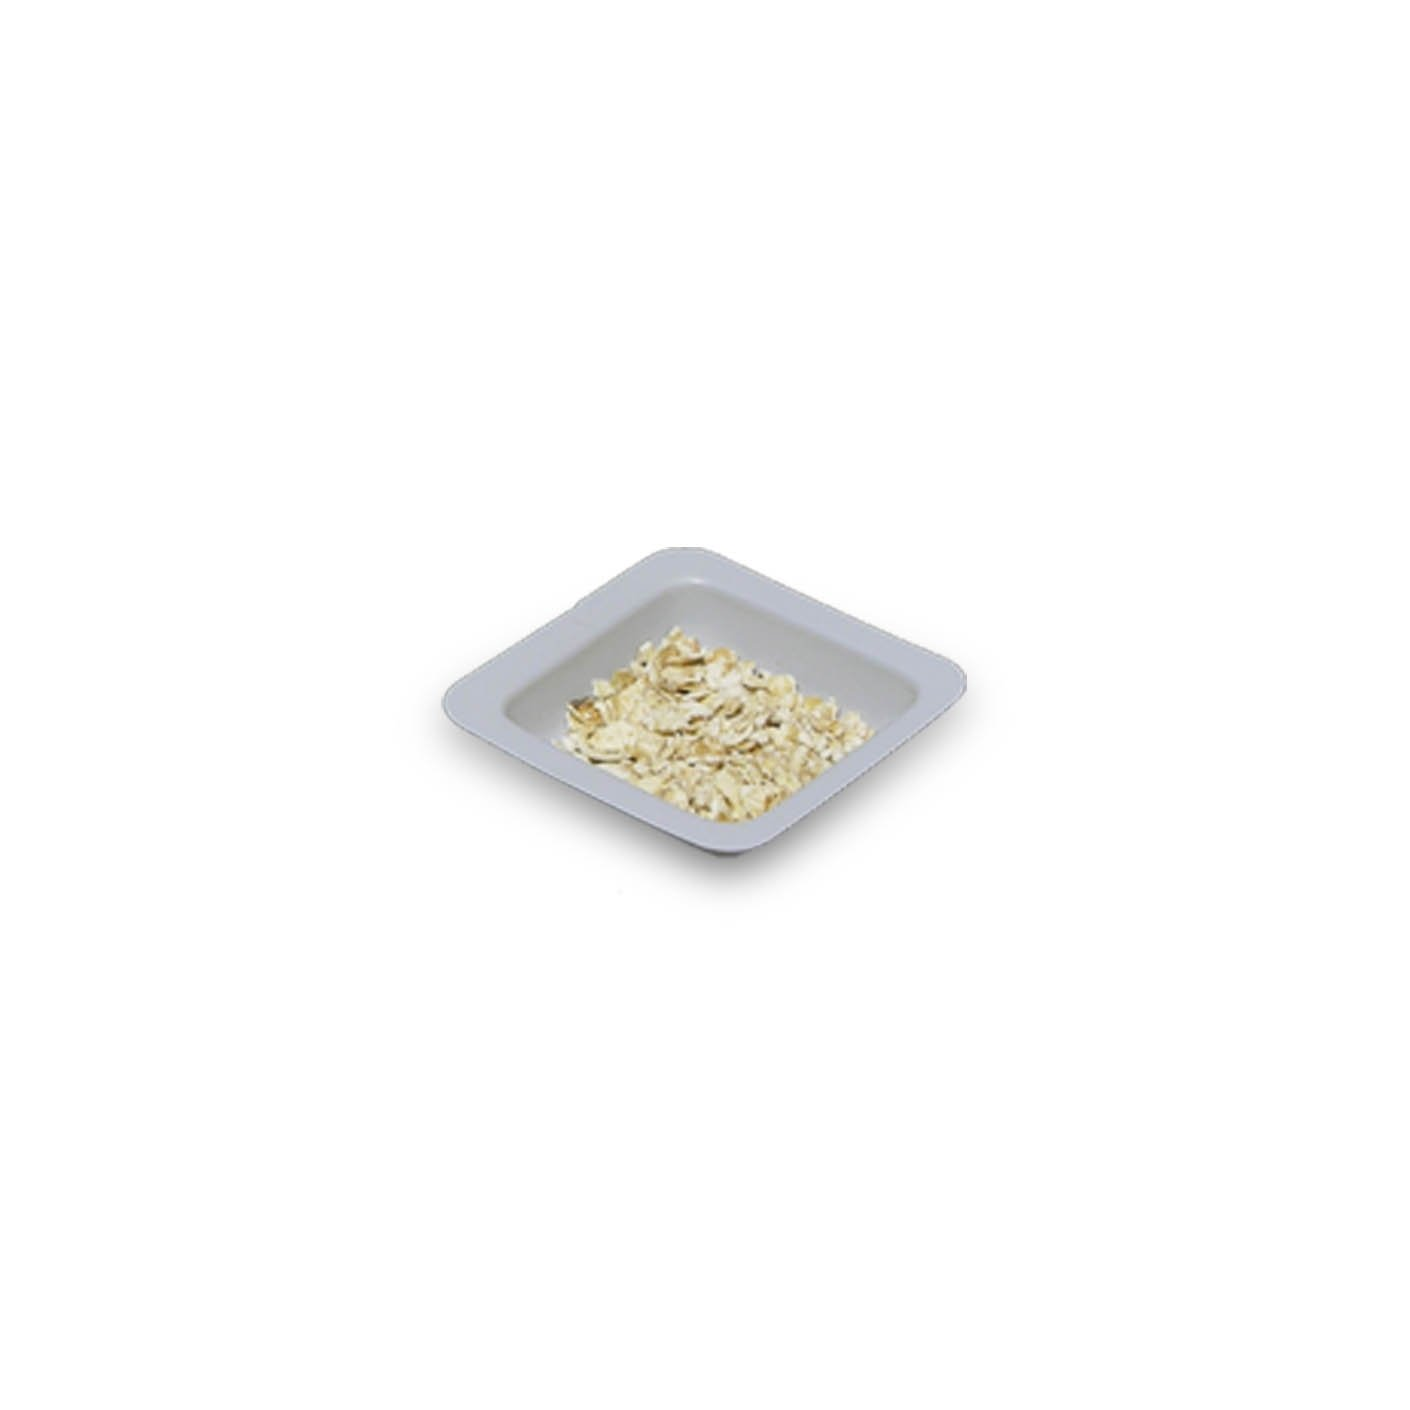 20mL White Antistatic Polystyrene Square Weigh Boat (25 Packs/Case - 500/Pack)